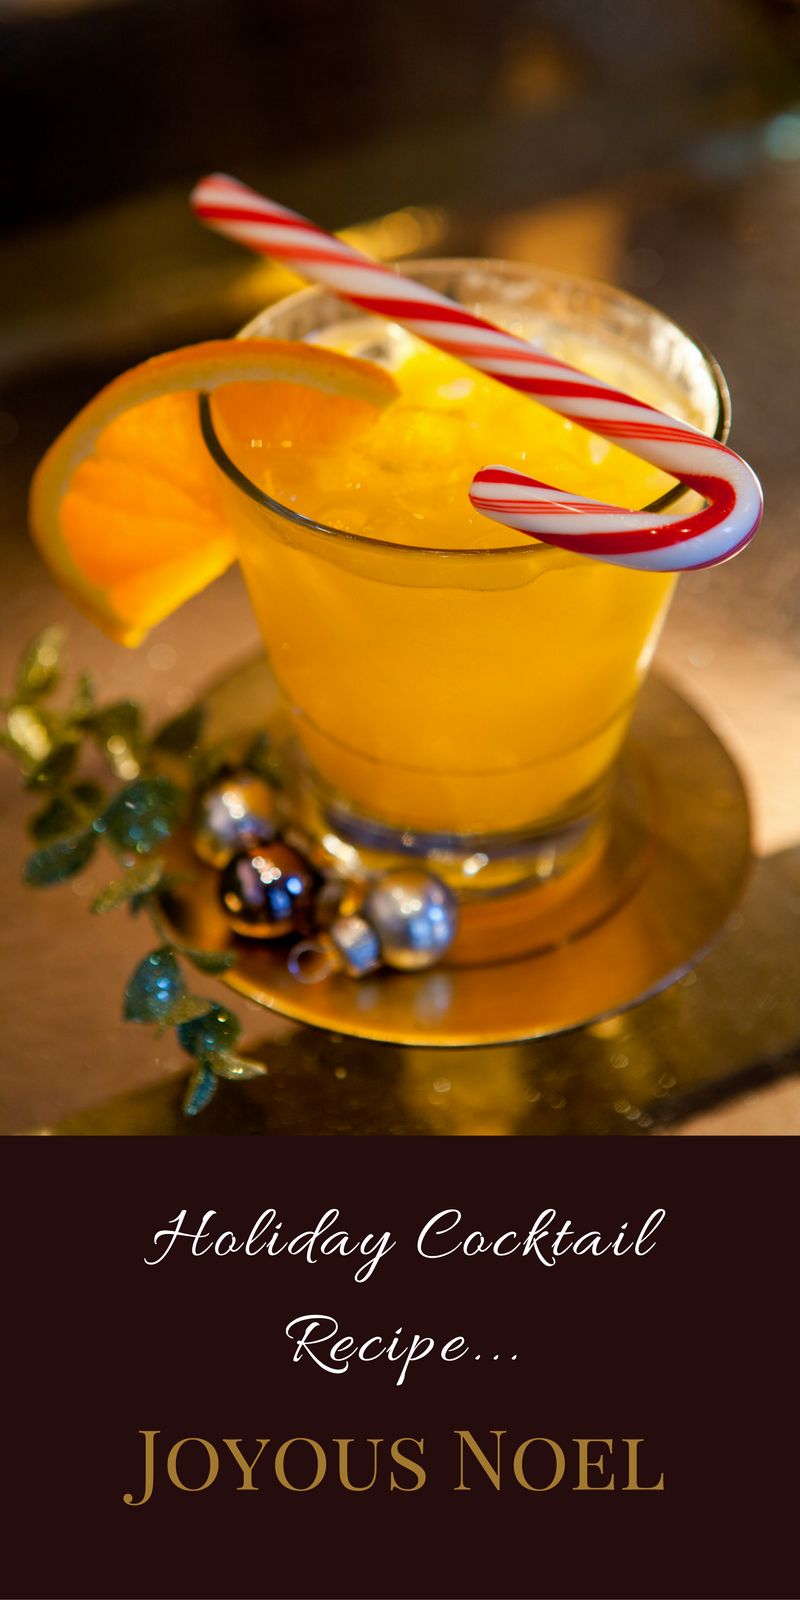 Learn how to make this year's favorite holiday cocktails, including the Joyous Noel, with these easy and festive recipes from the Carousel Bar.